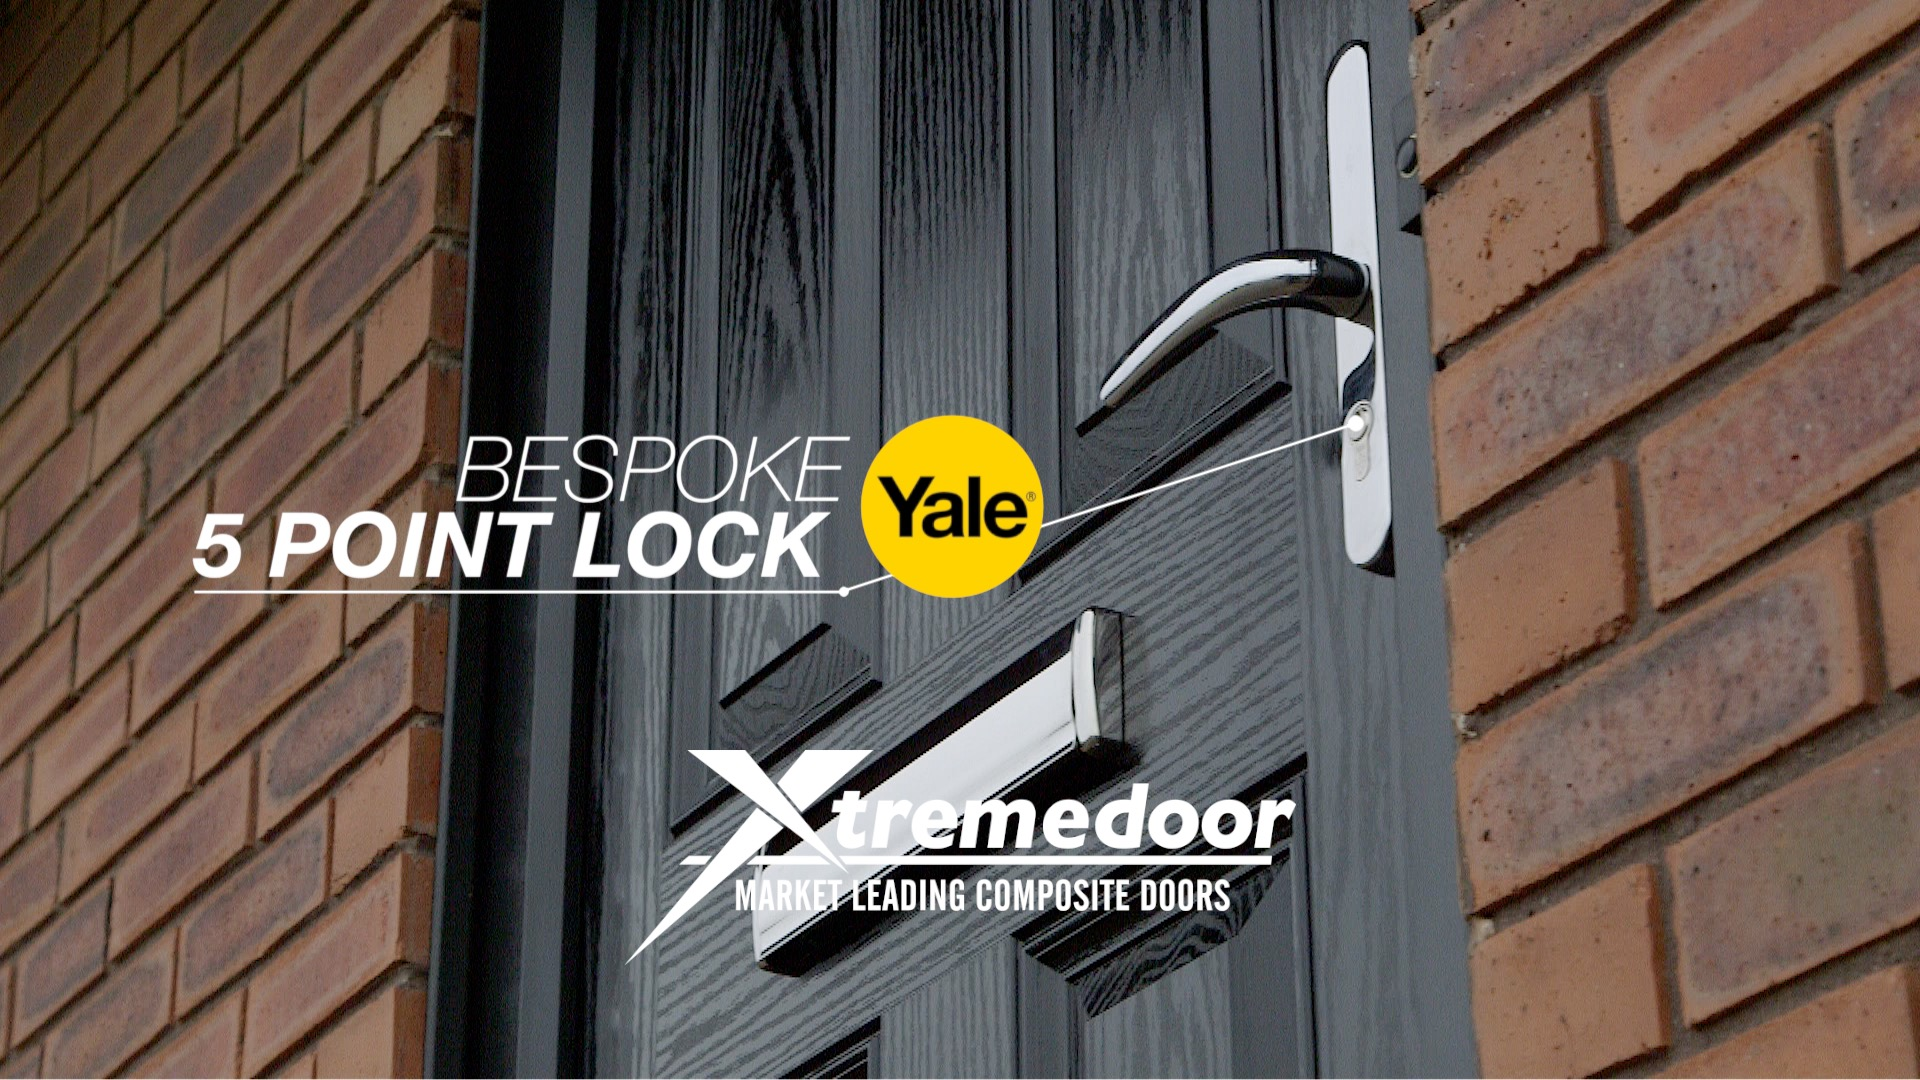 NEW XTREMEDOOR VIDEO PUTS SECURITY IN THE SPOTLIGHT